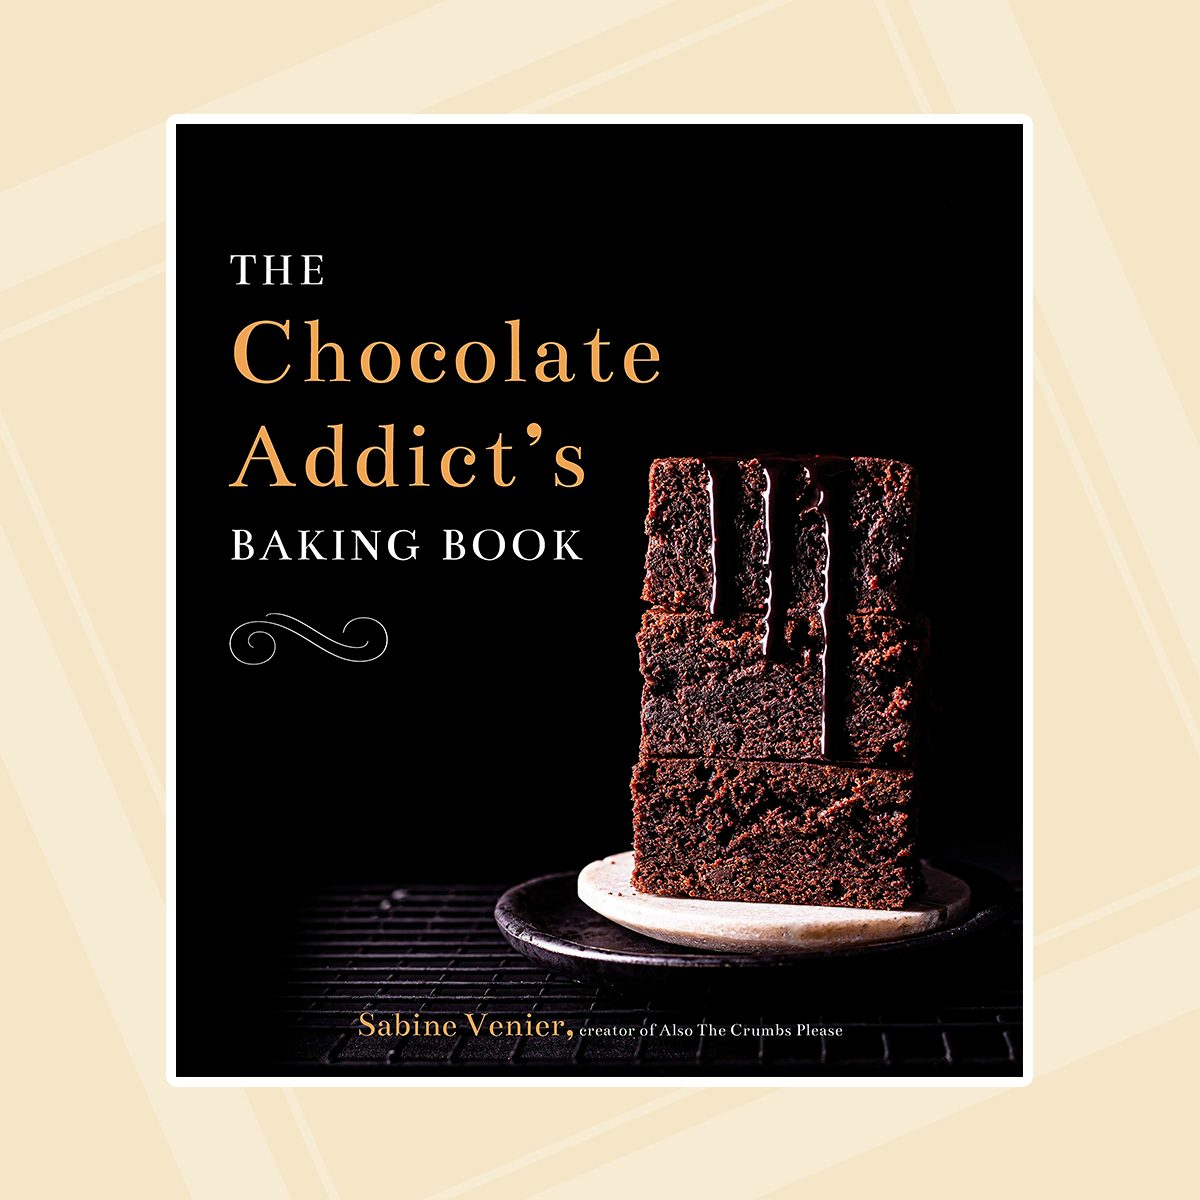 The Chocolate Addict's Baking Book Hardcover – September 29, 2020